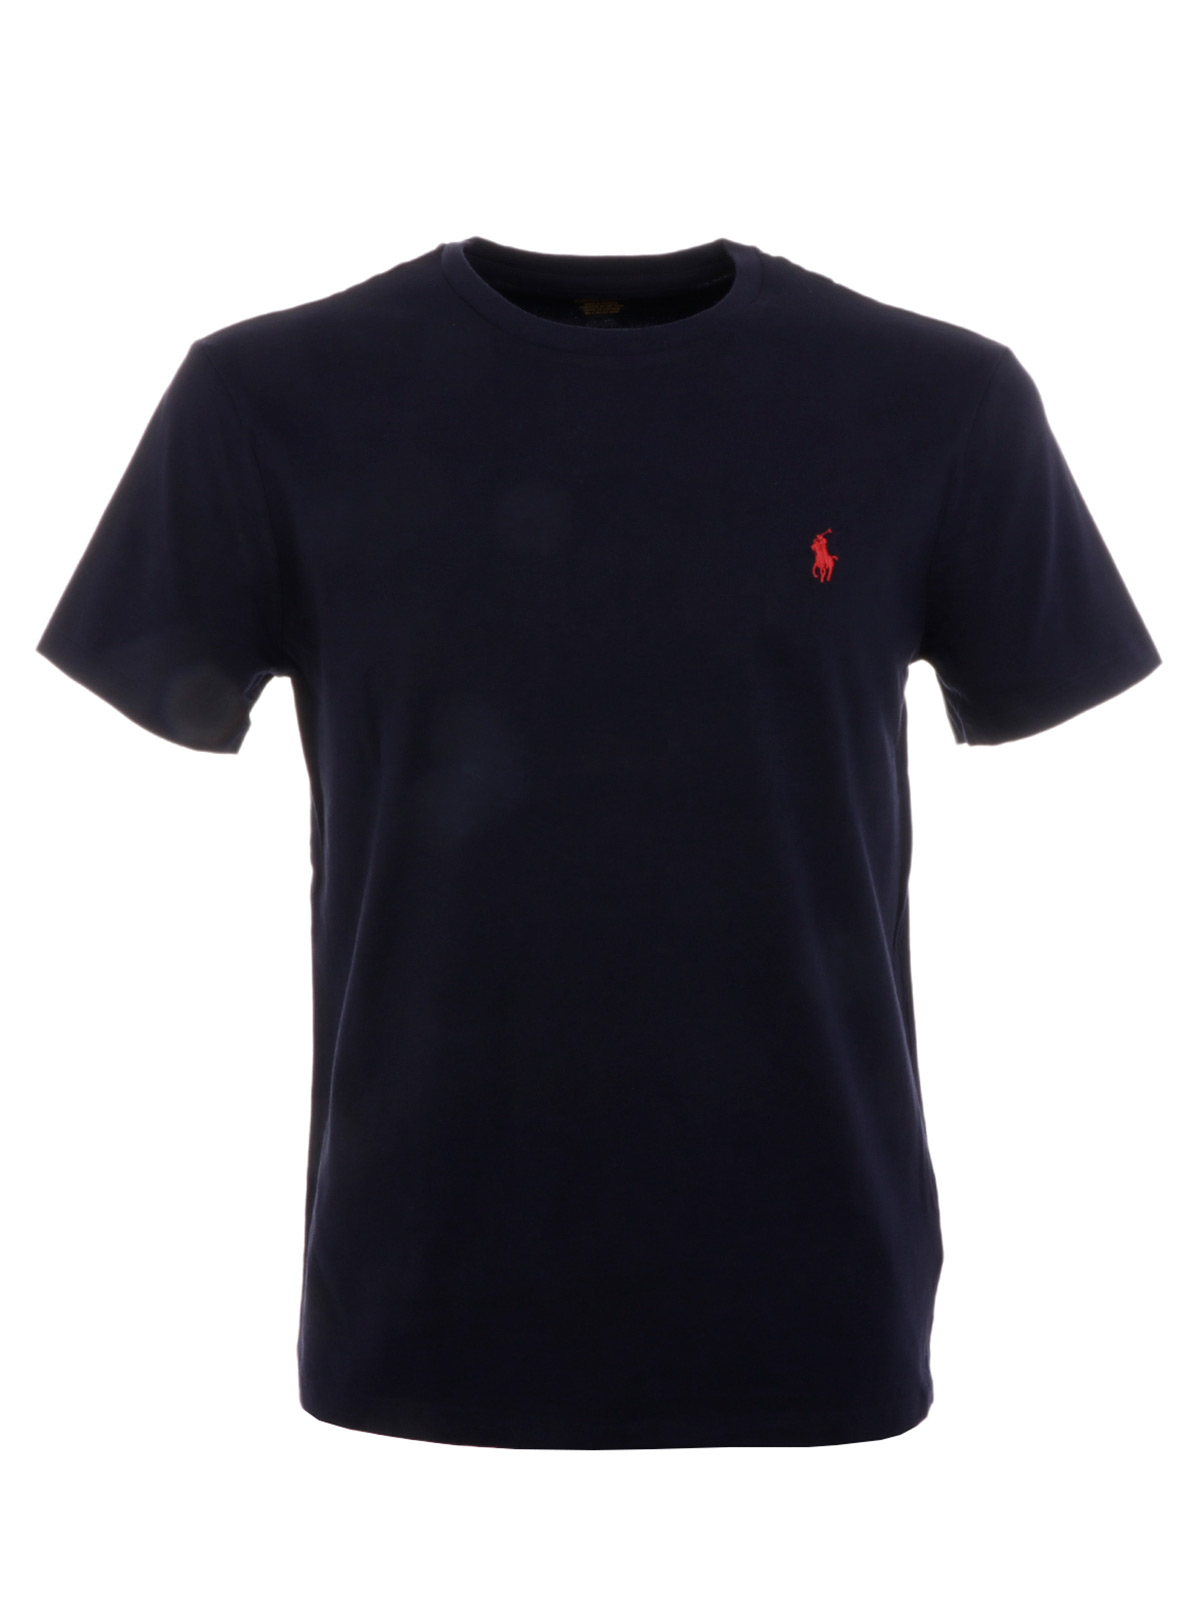 quality design 3a745 8a5ae POLO RALPH LAUREN Men's T-shirt